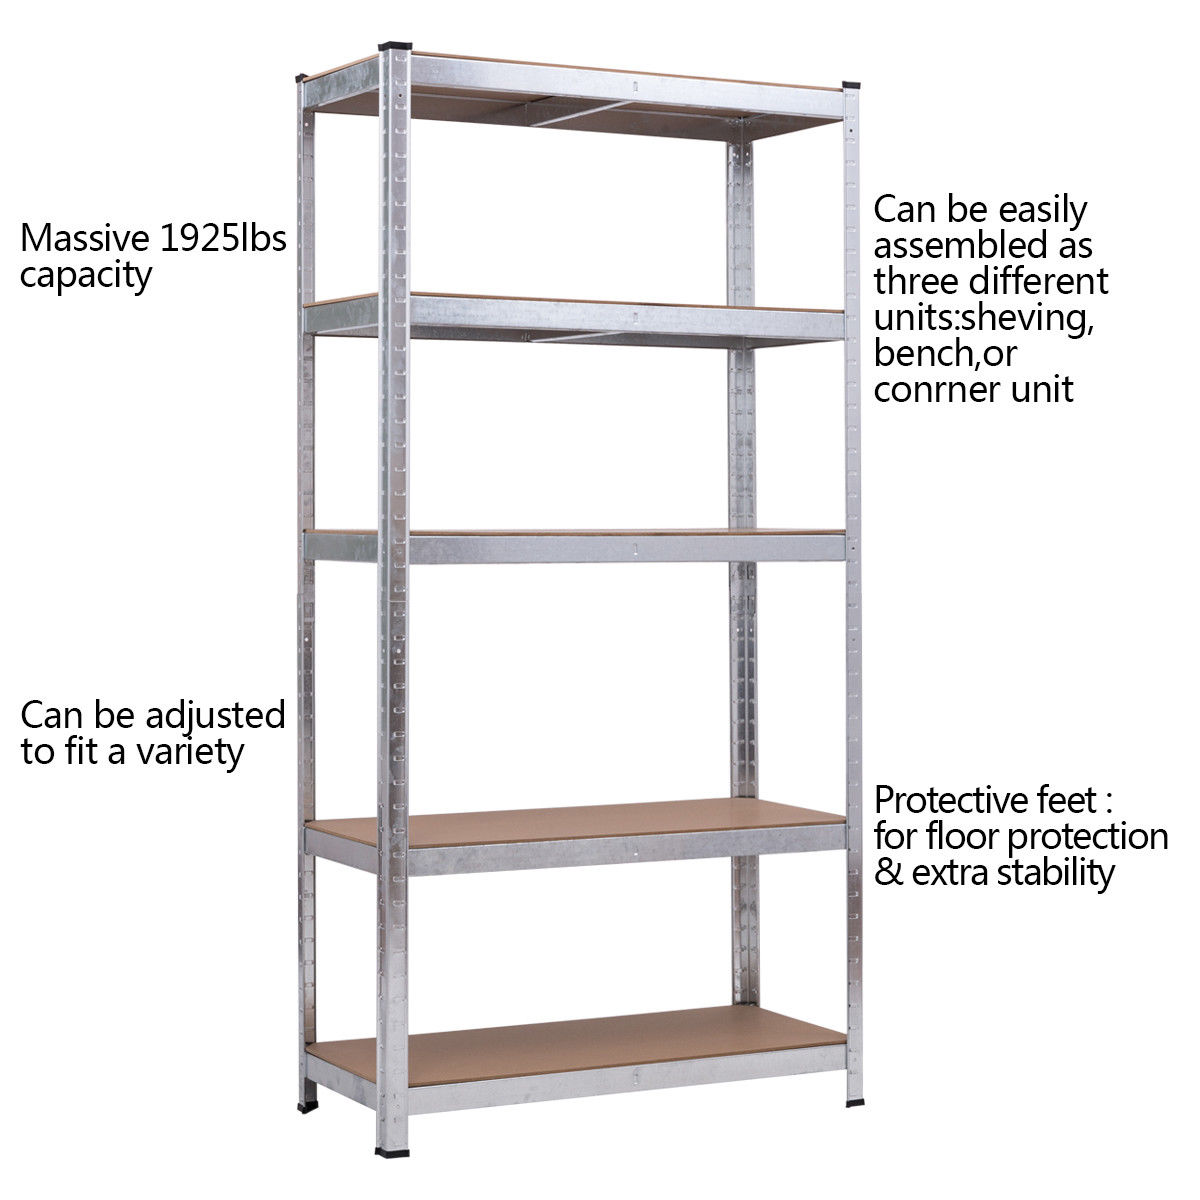 costway 71 heavy duty storage shelf steel metal garage rack 5 level adjustable shelves - Heavy Duty Storage Shelves